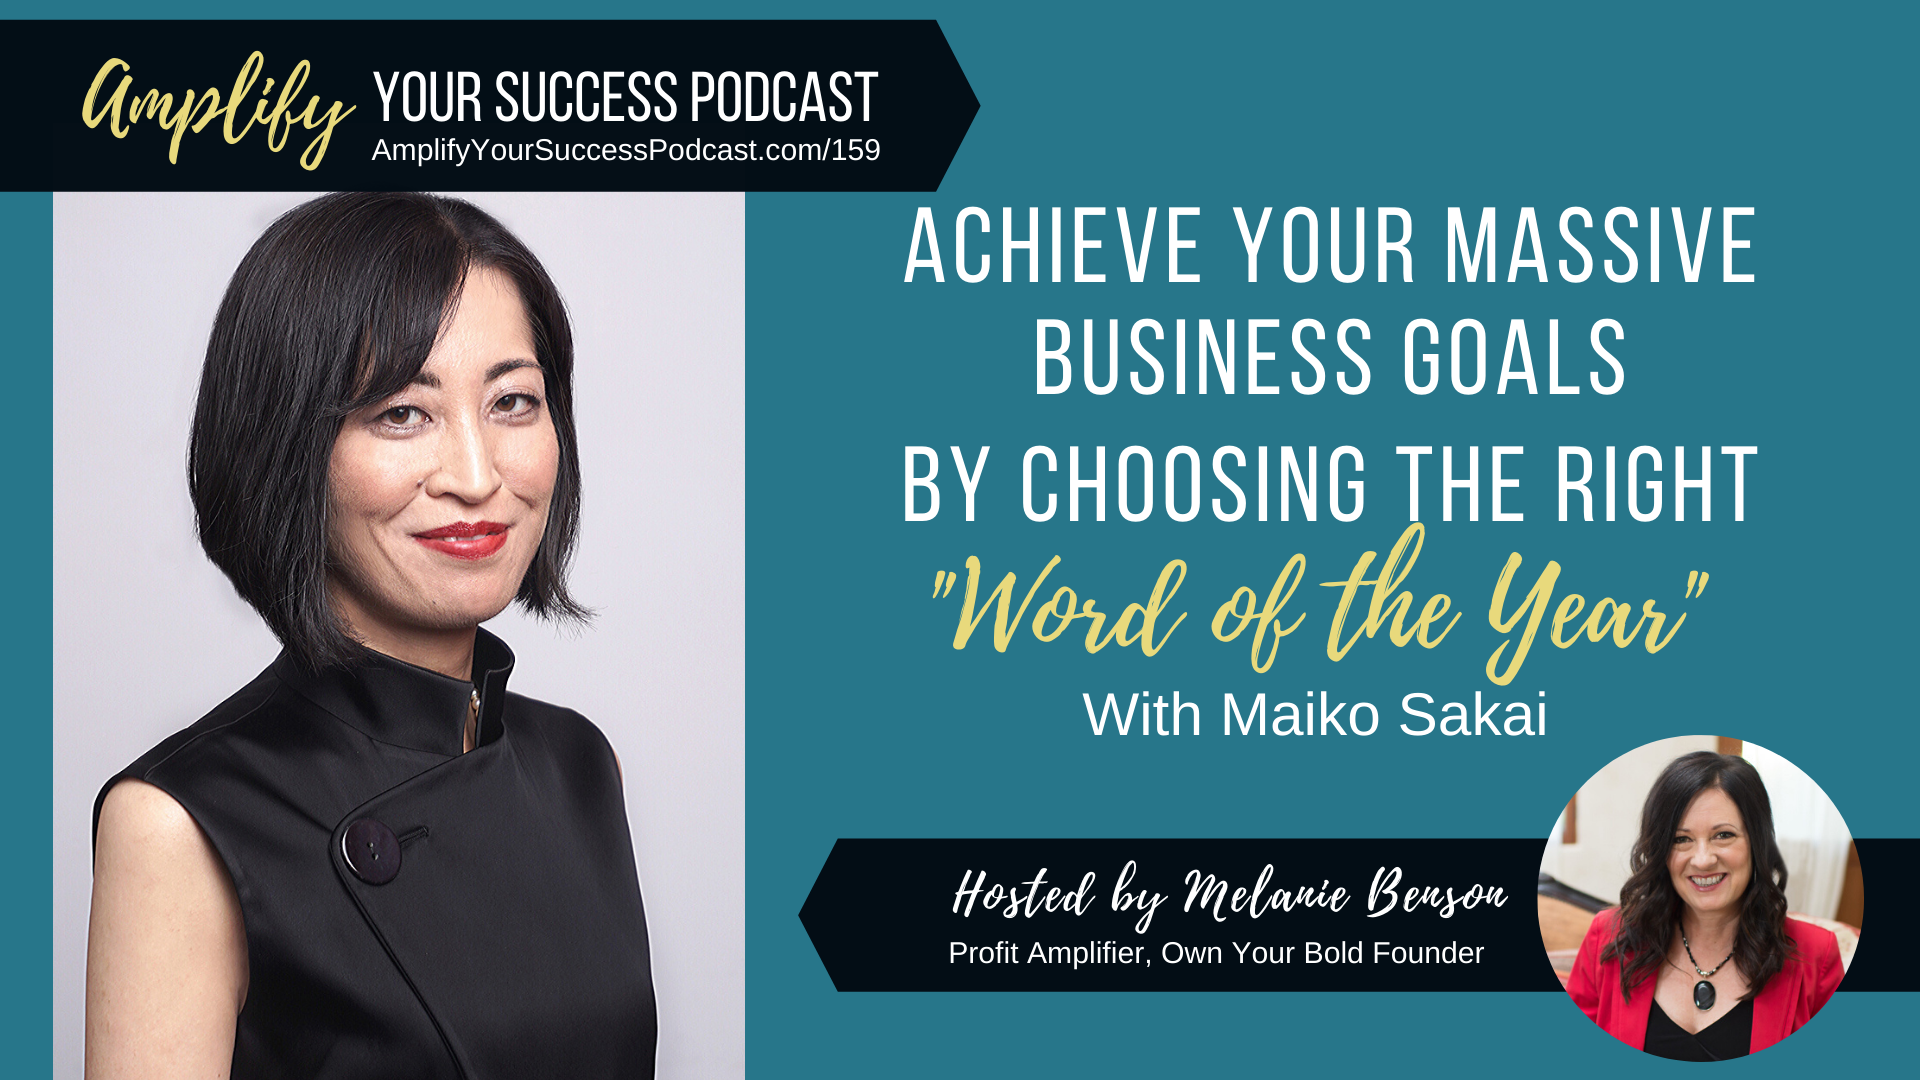 """Achieve Your Massive Business Goals by Choosing the Right """"Word of the Year"""" with Maiko Sakai"""